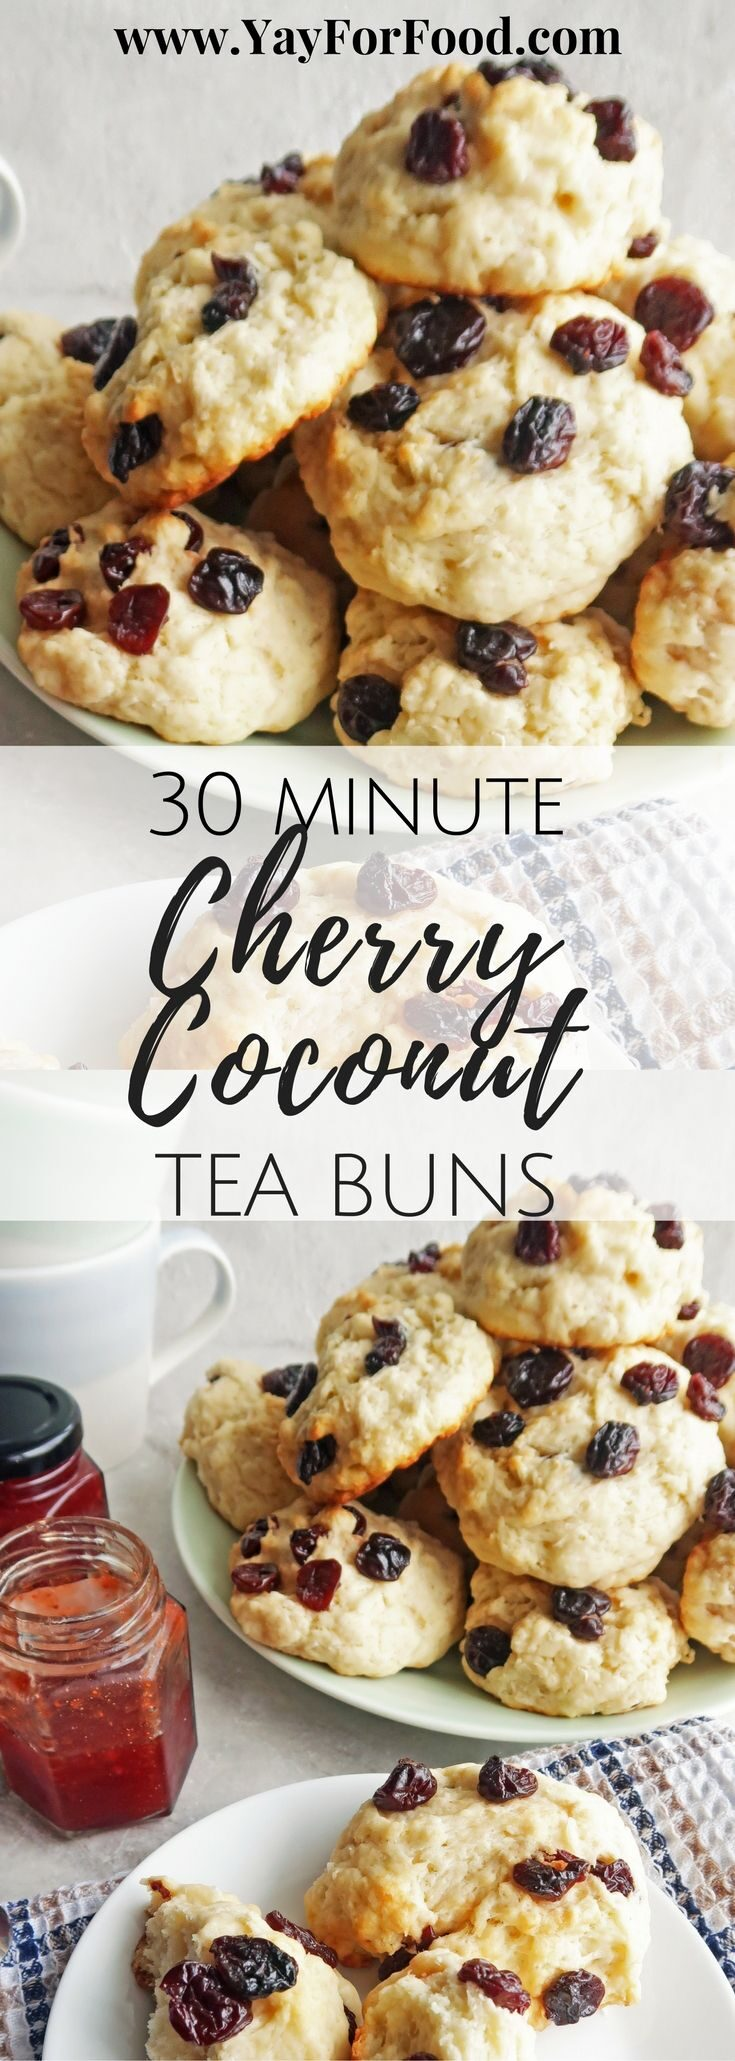 A wonderful combination of shredded coconut and dried cherries are showcased in this delicious tea bun that's ready in 30 minutes! Serve it with tea or coffee for breakfast or as a portable snack anytime!